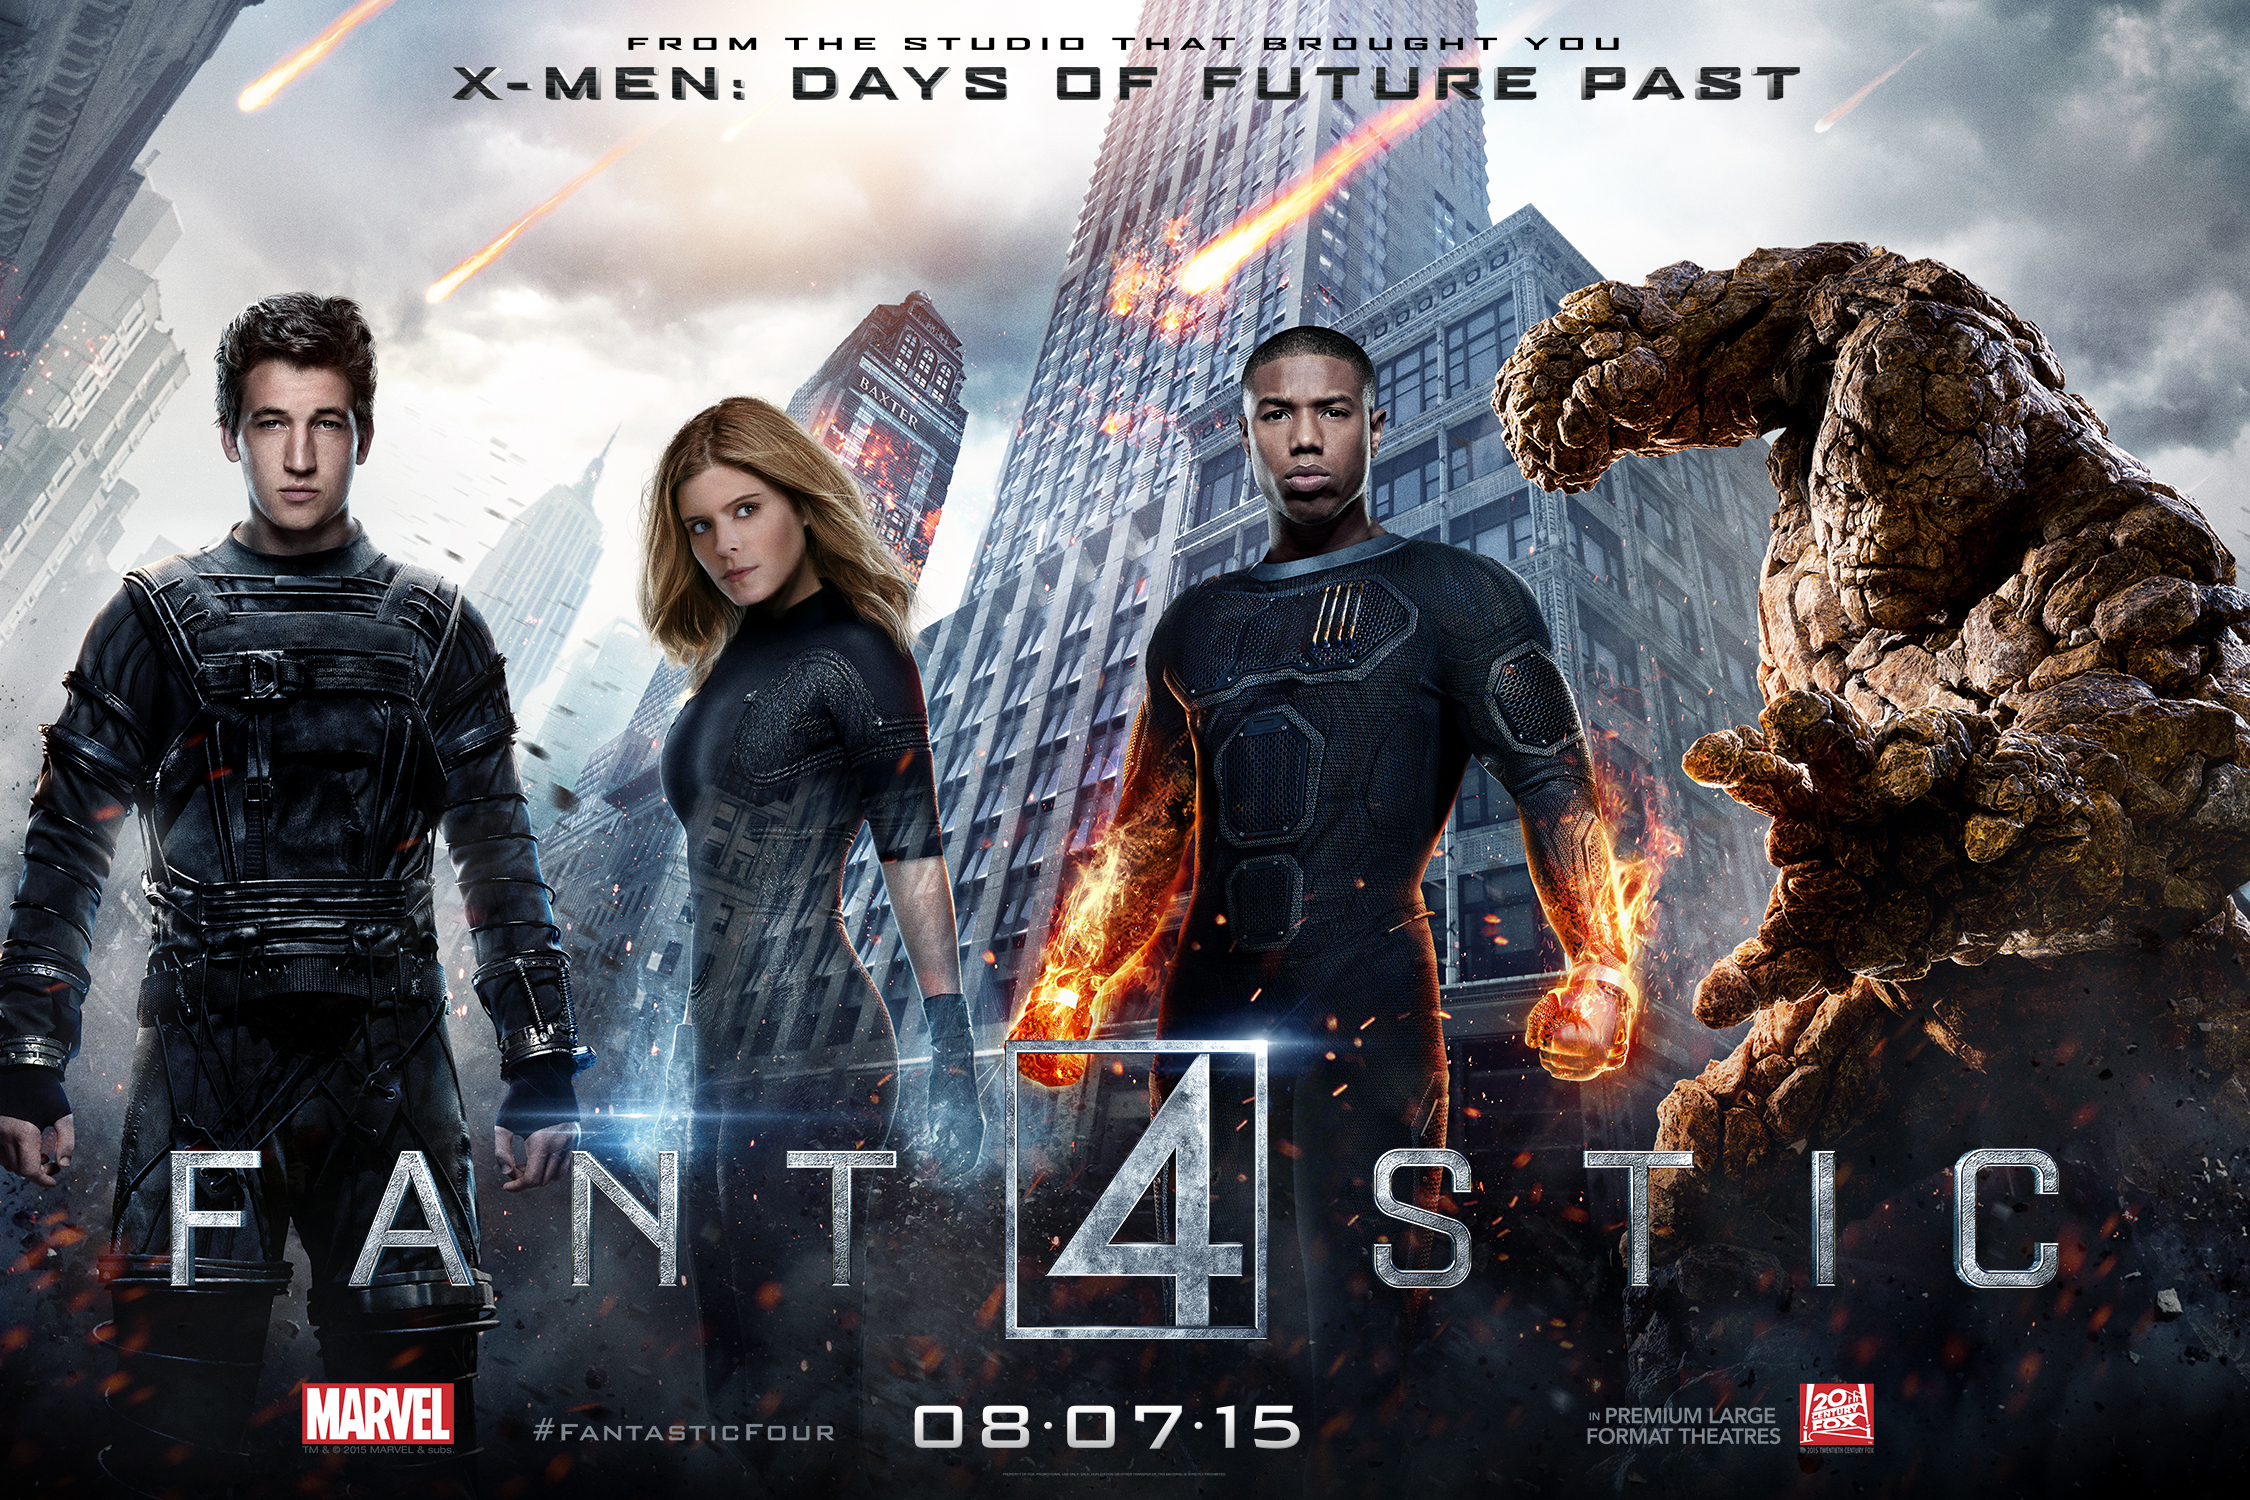 fantastic-four-reboot-character-banner-poster